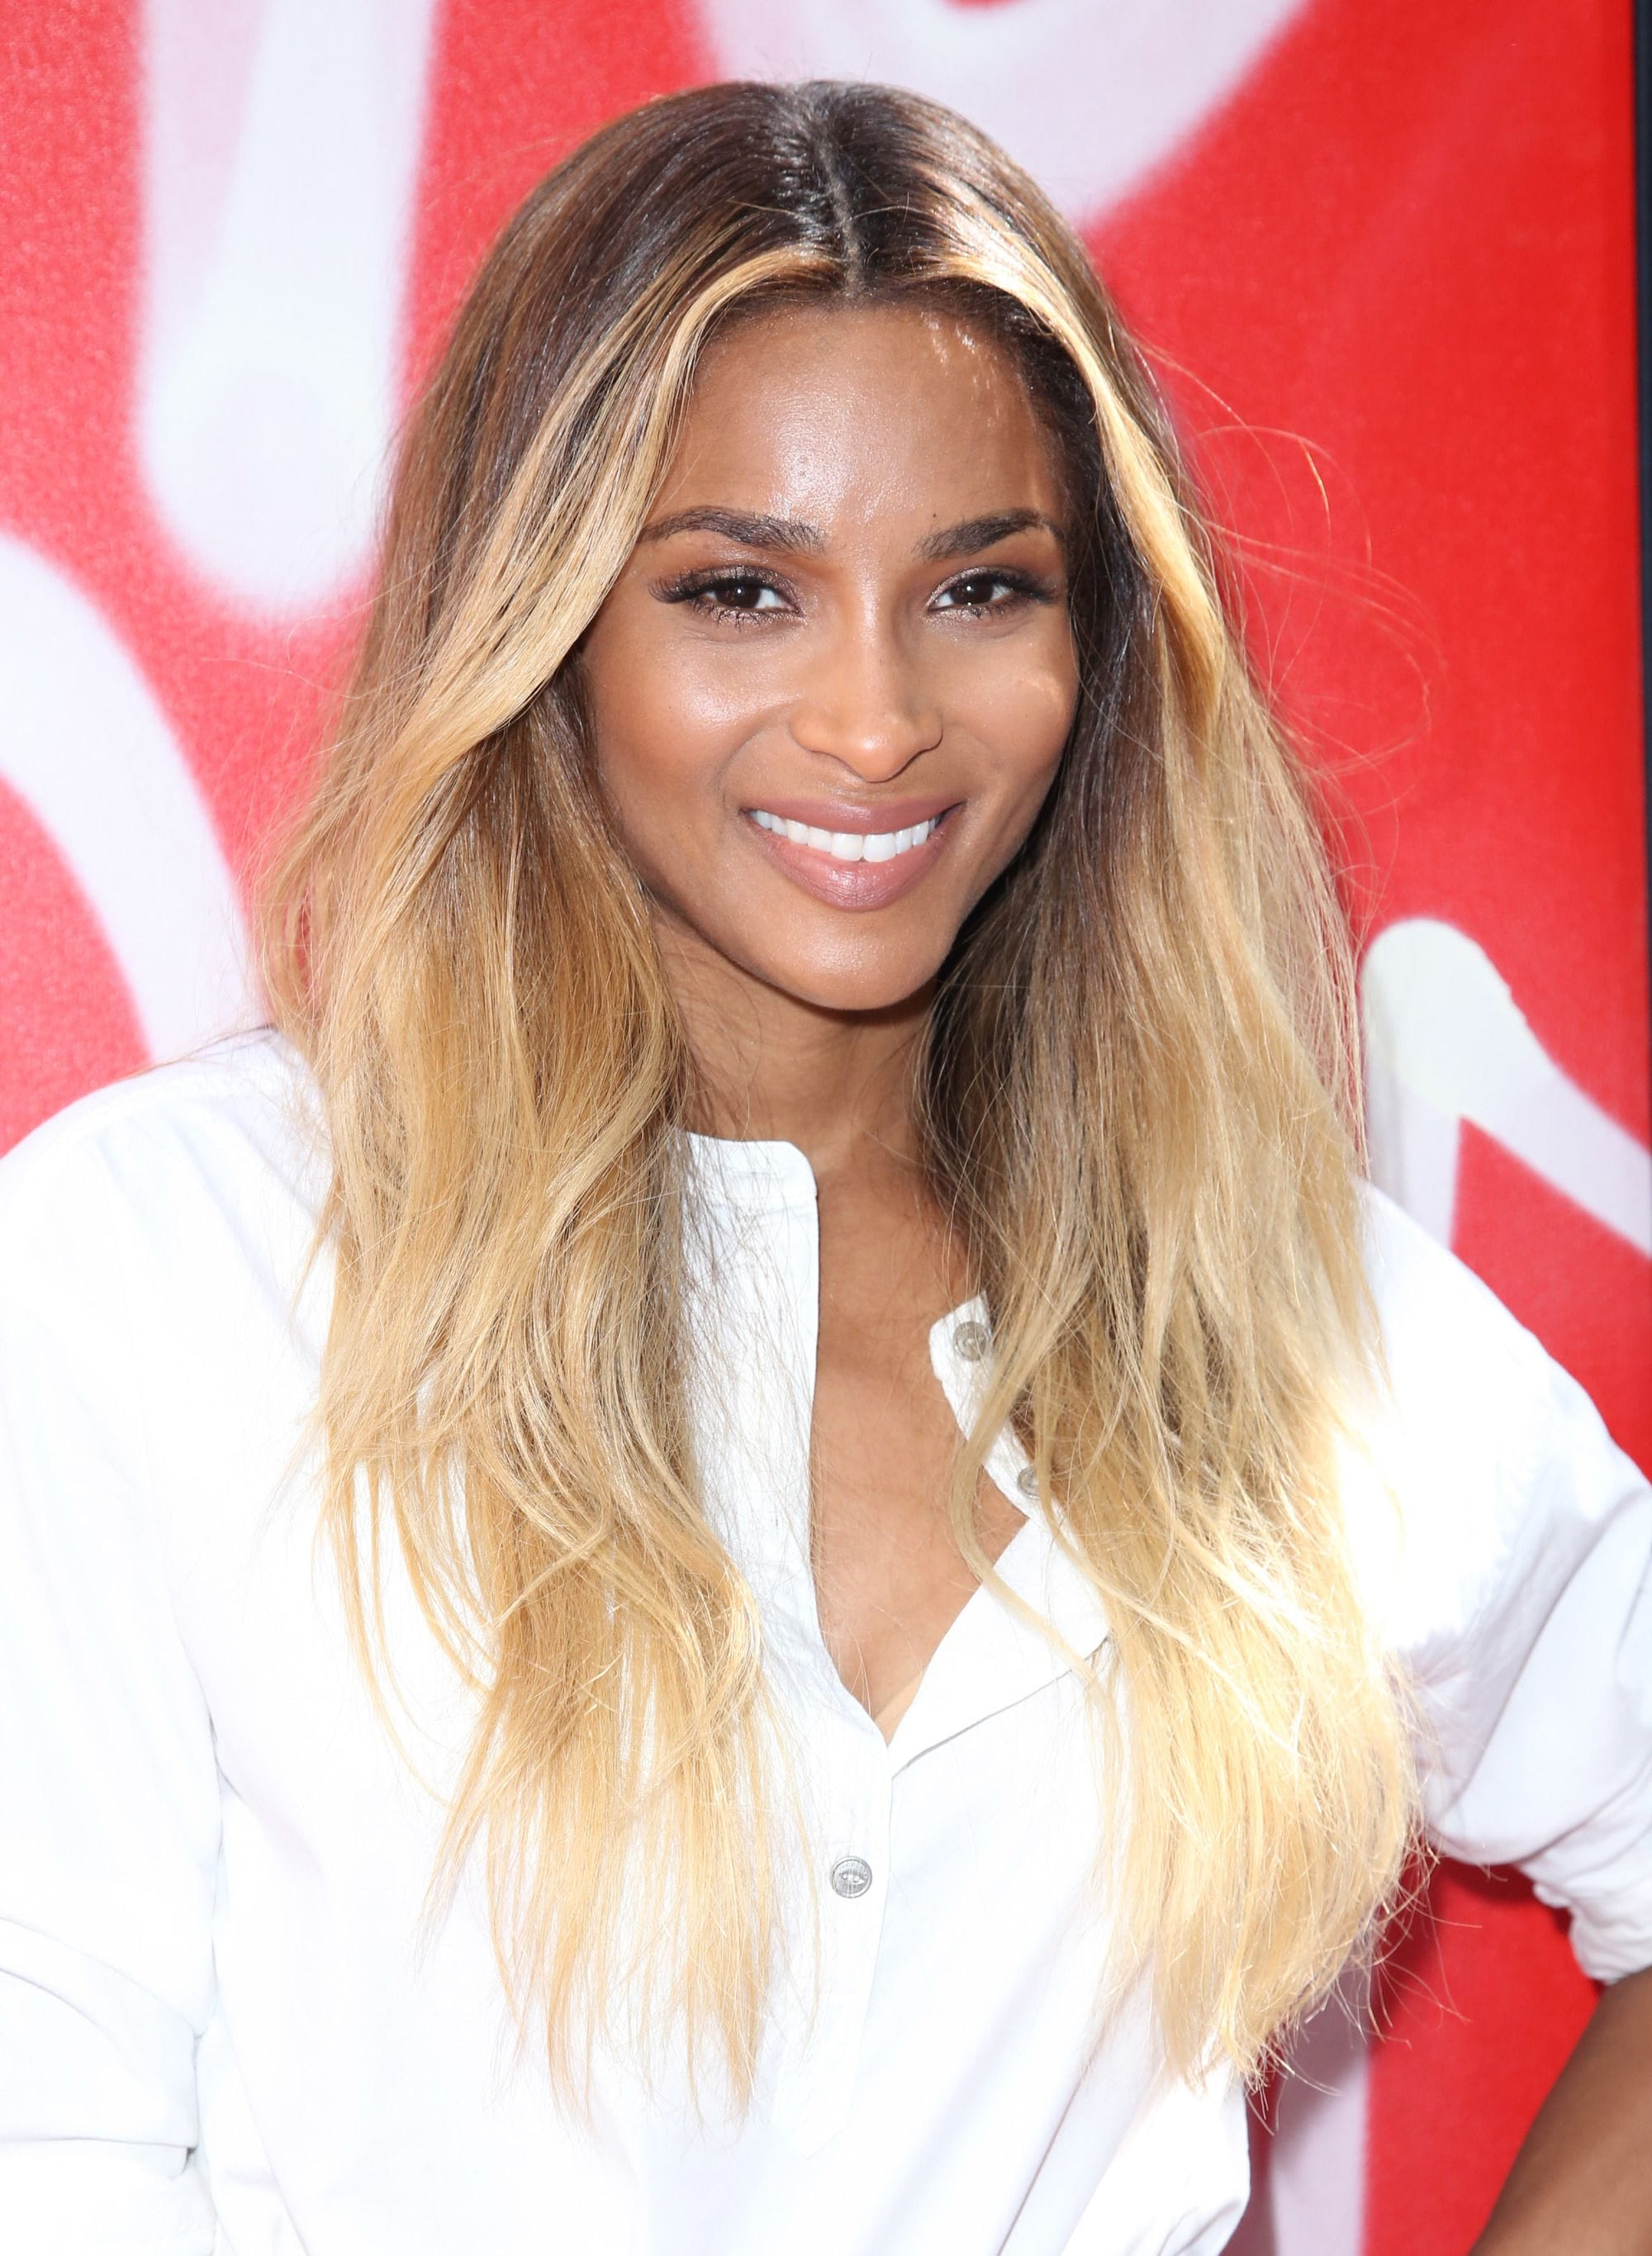 Brown hair with blonde highlights: Ciara with brown to blonde ombre hair with light blonde bangs